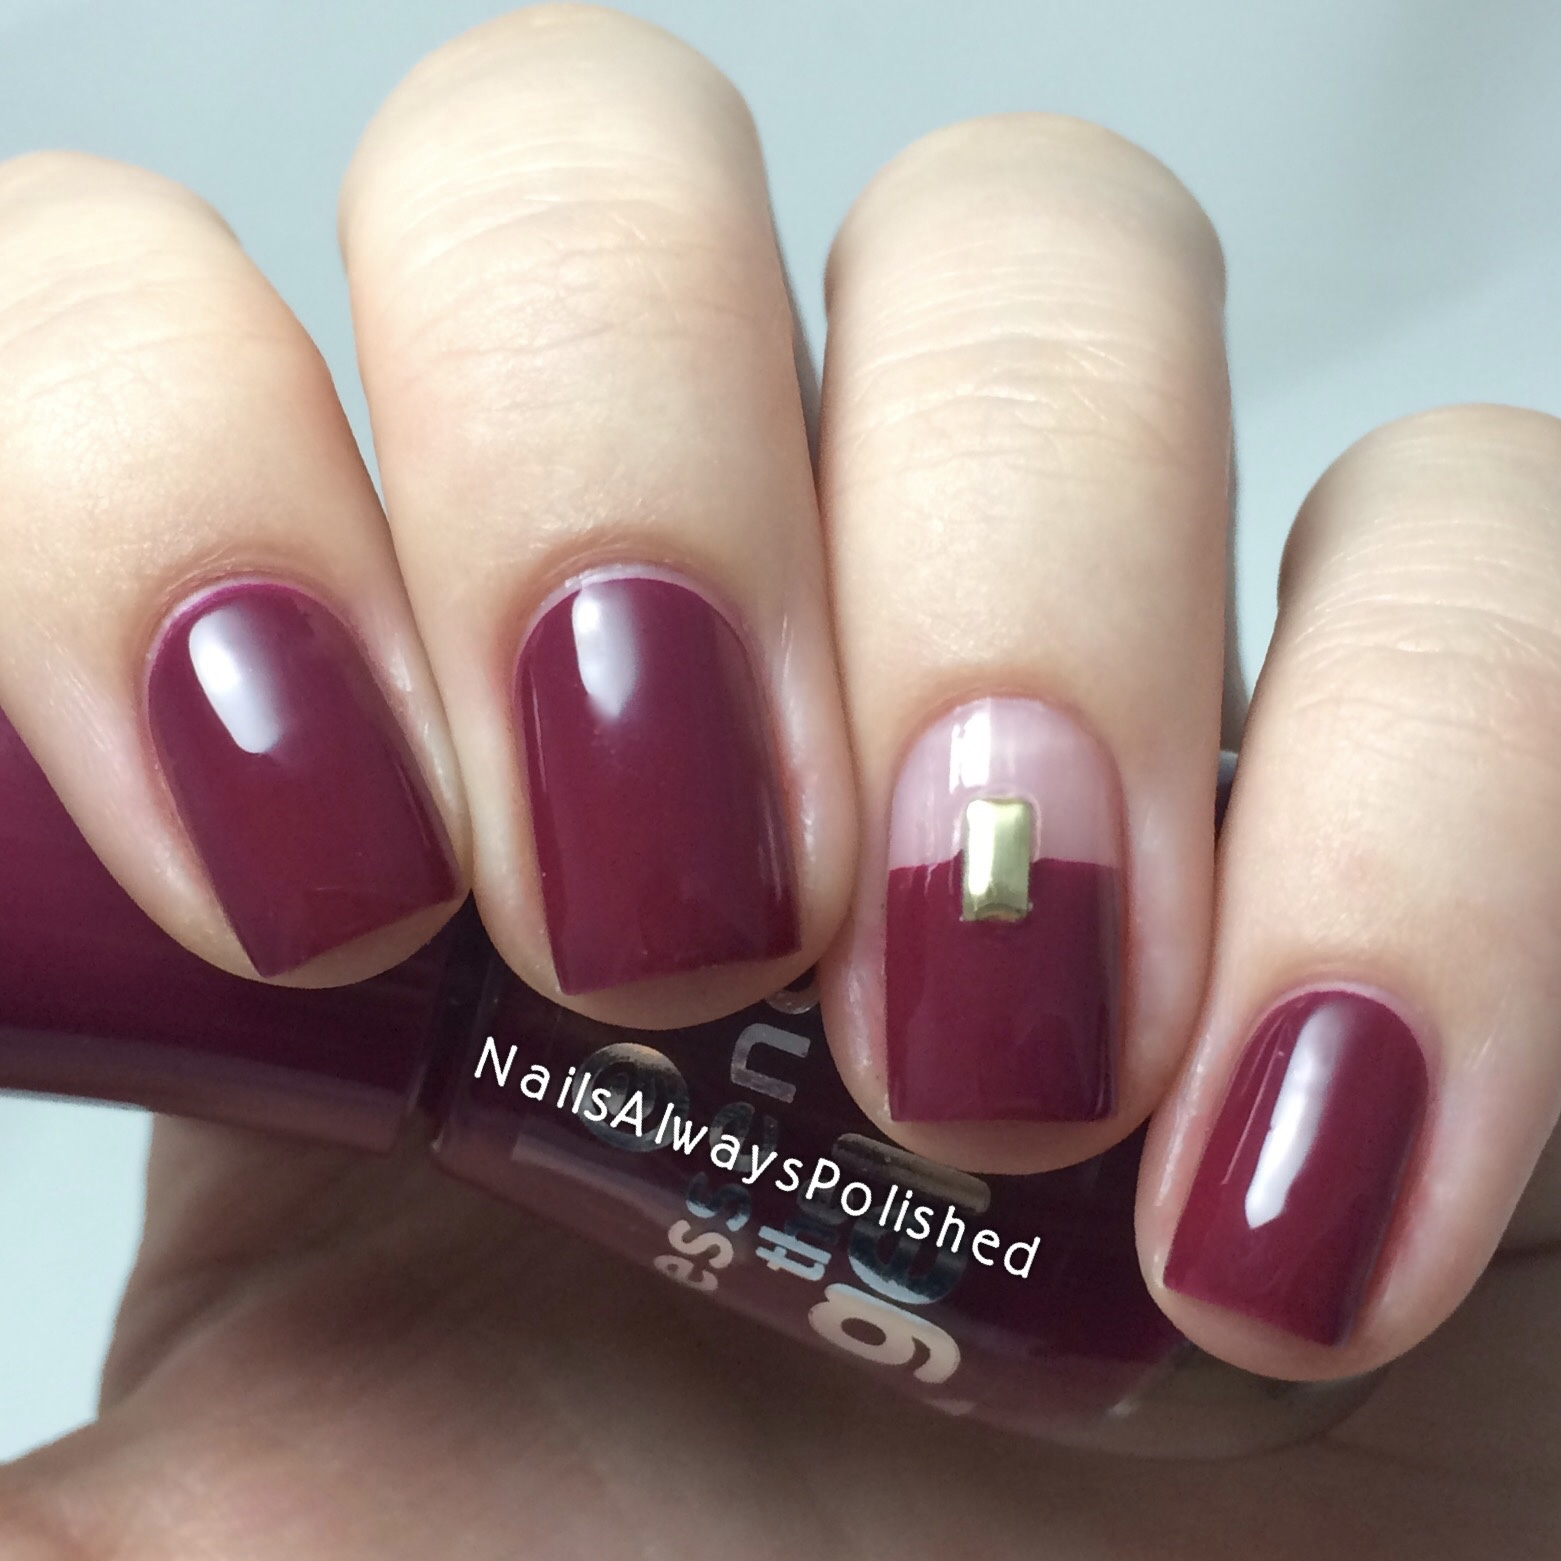 Nails Always Polished: Essence True Love